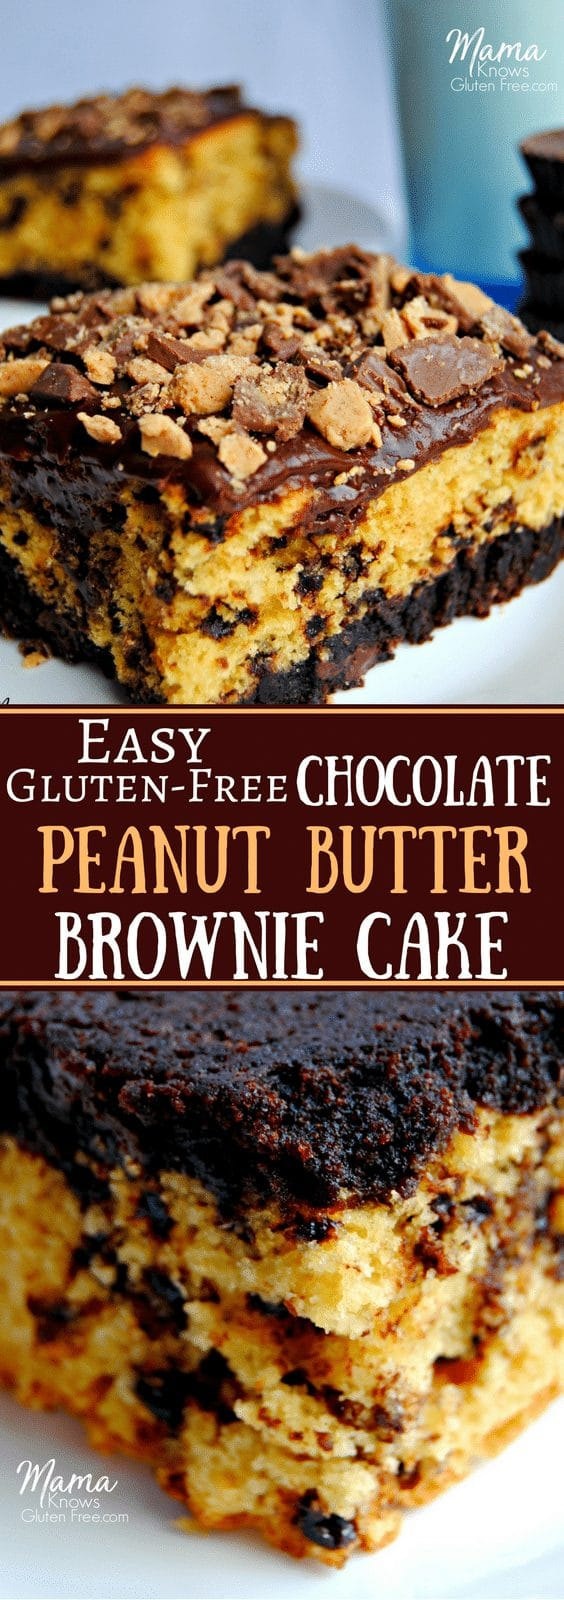 Easy Gluten Free Chocolate Peanut Butter Brownie Cake